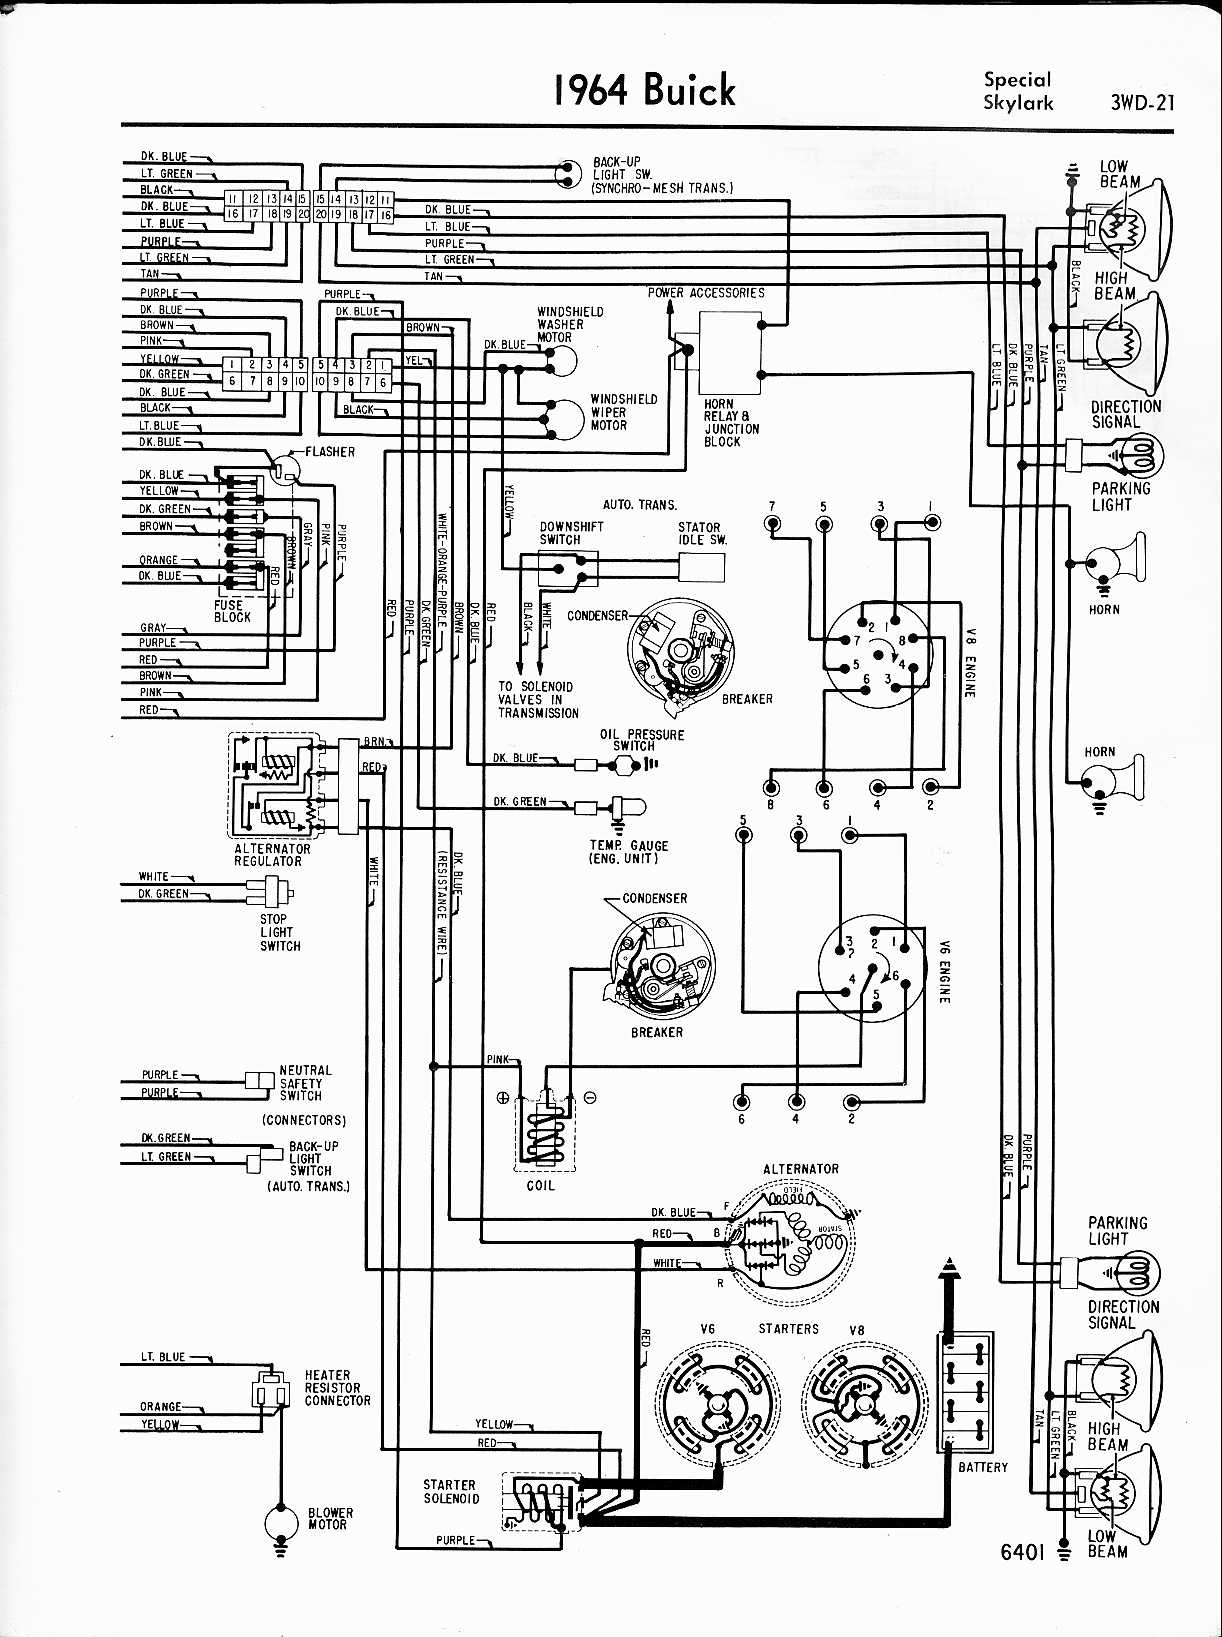 Free Buick Wiring Diagrams 1996 Library Kde12sta Kipor Generator Diagram For Skylark Get Image About 2003 Regal